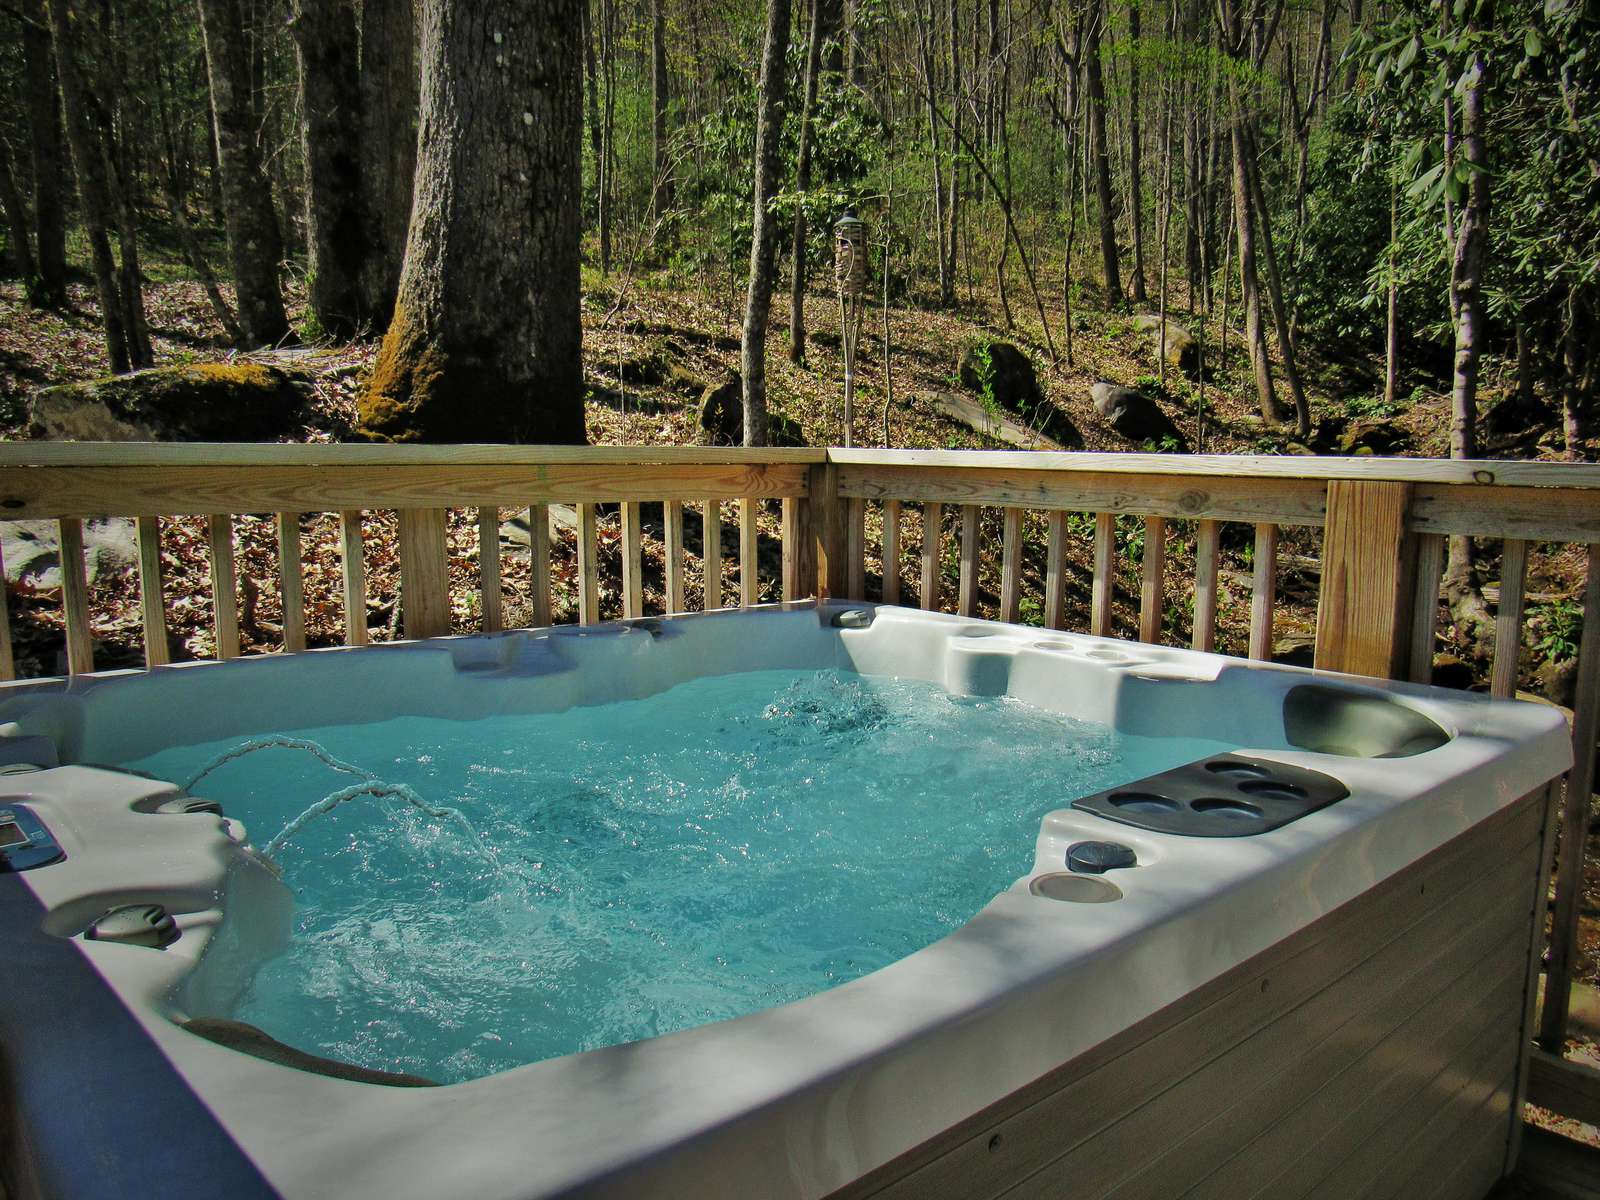 Therapeudic Private Hot Tub